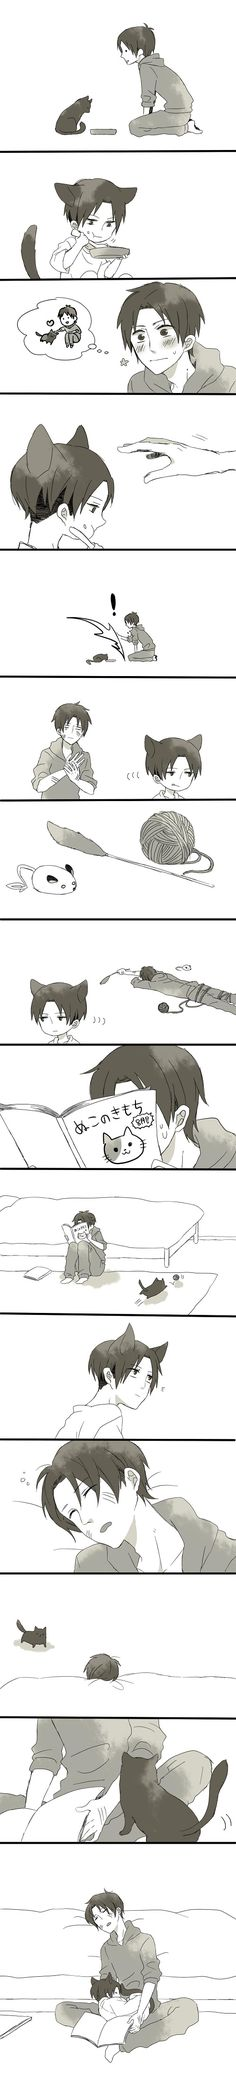 Eren and neko levi // AoT <<< This is actually so cute